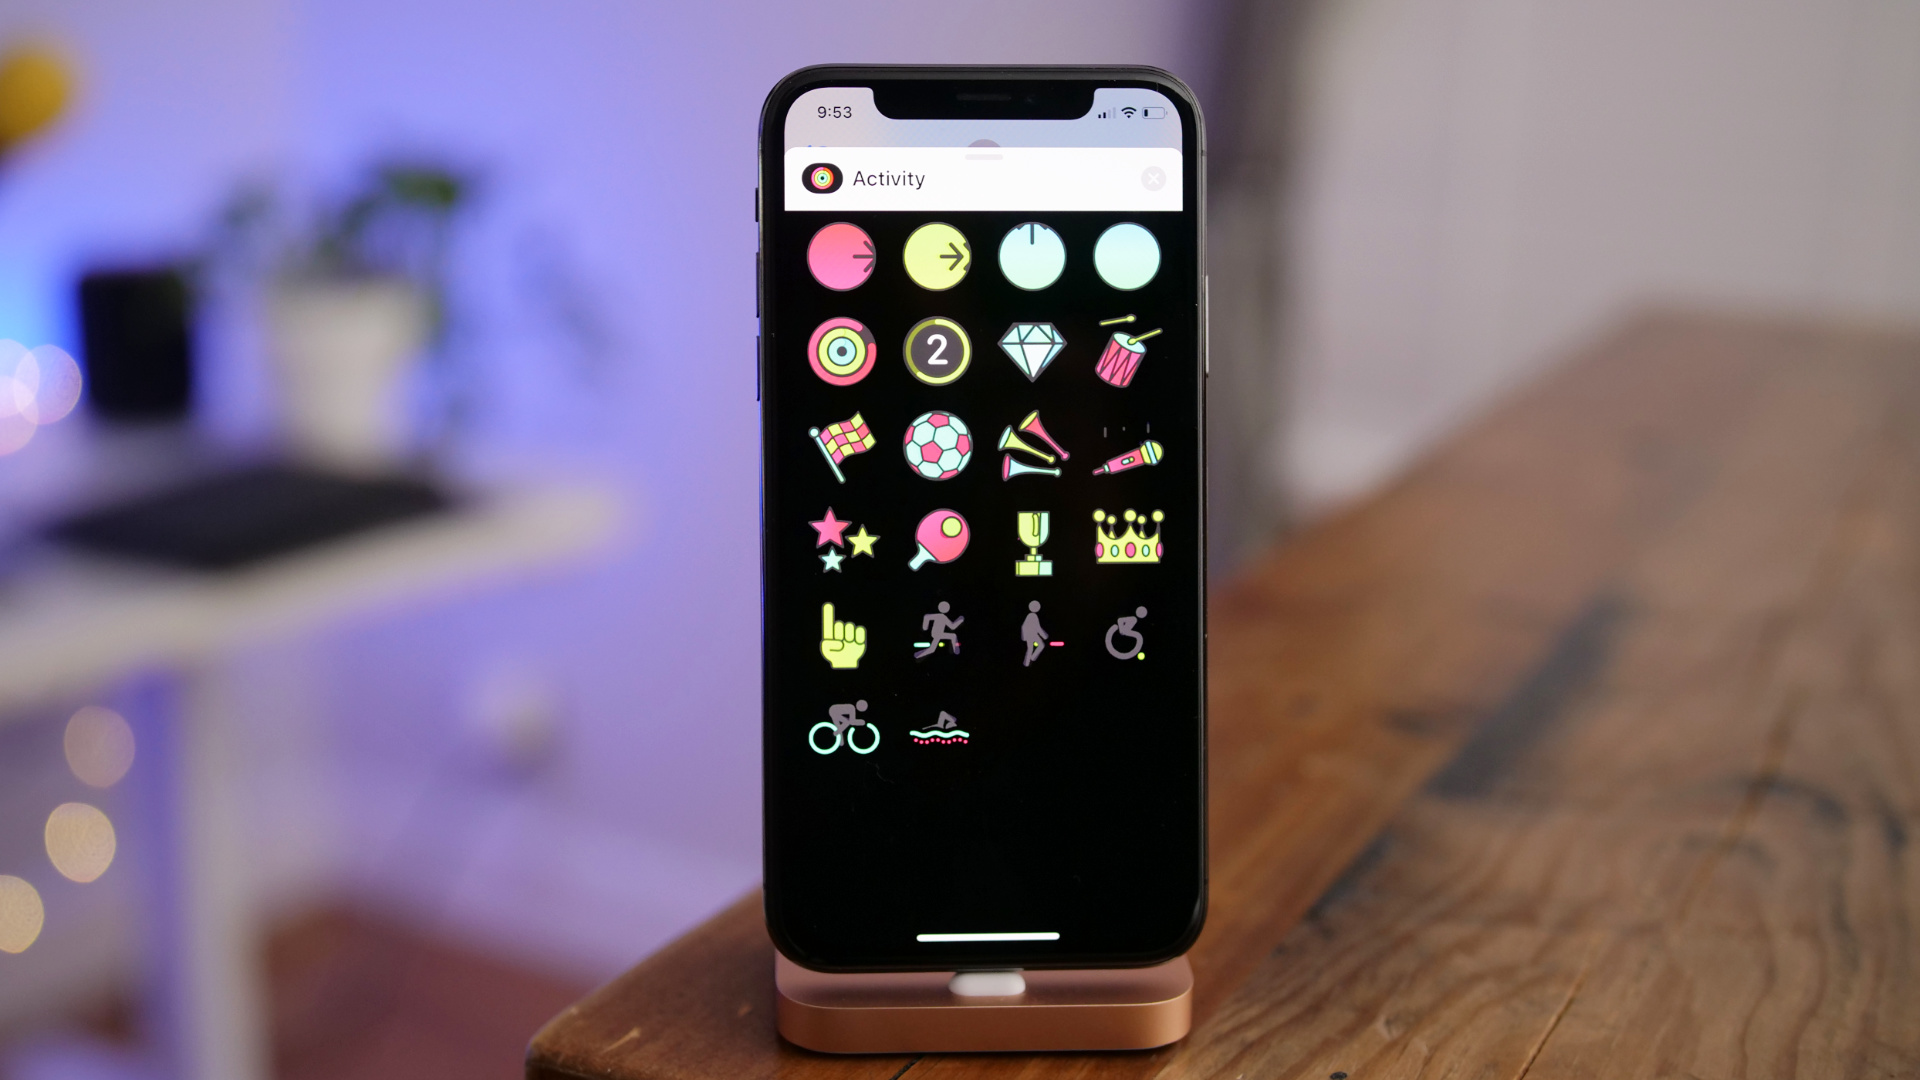 iOS 12 will be powering your iPhone or iPad for the next year and it has plenty to offer For those brave enough iOS 12 is already available through